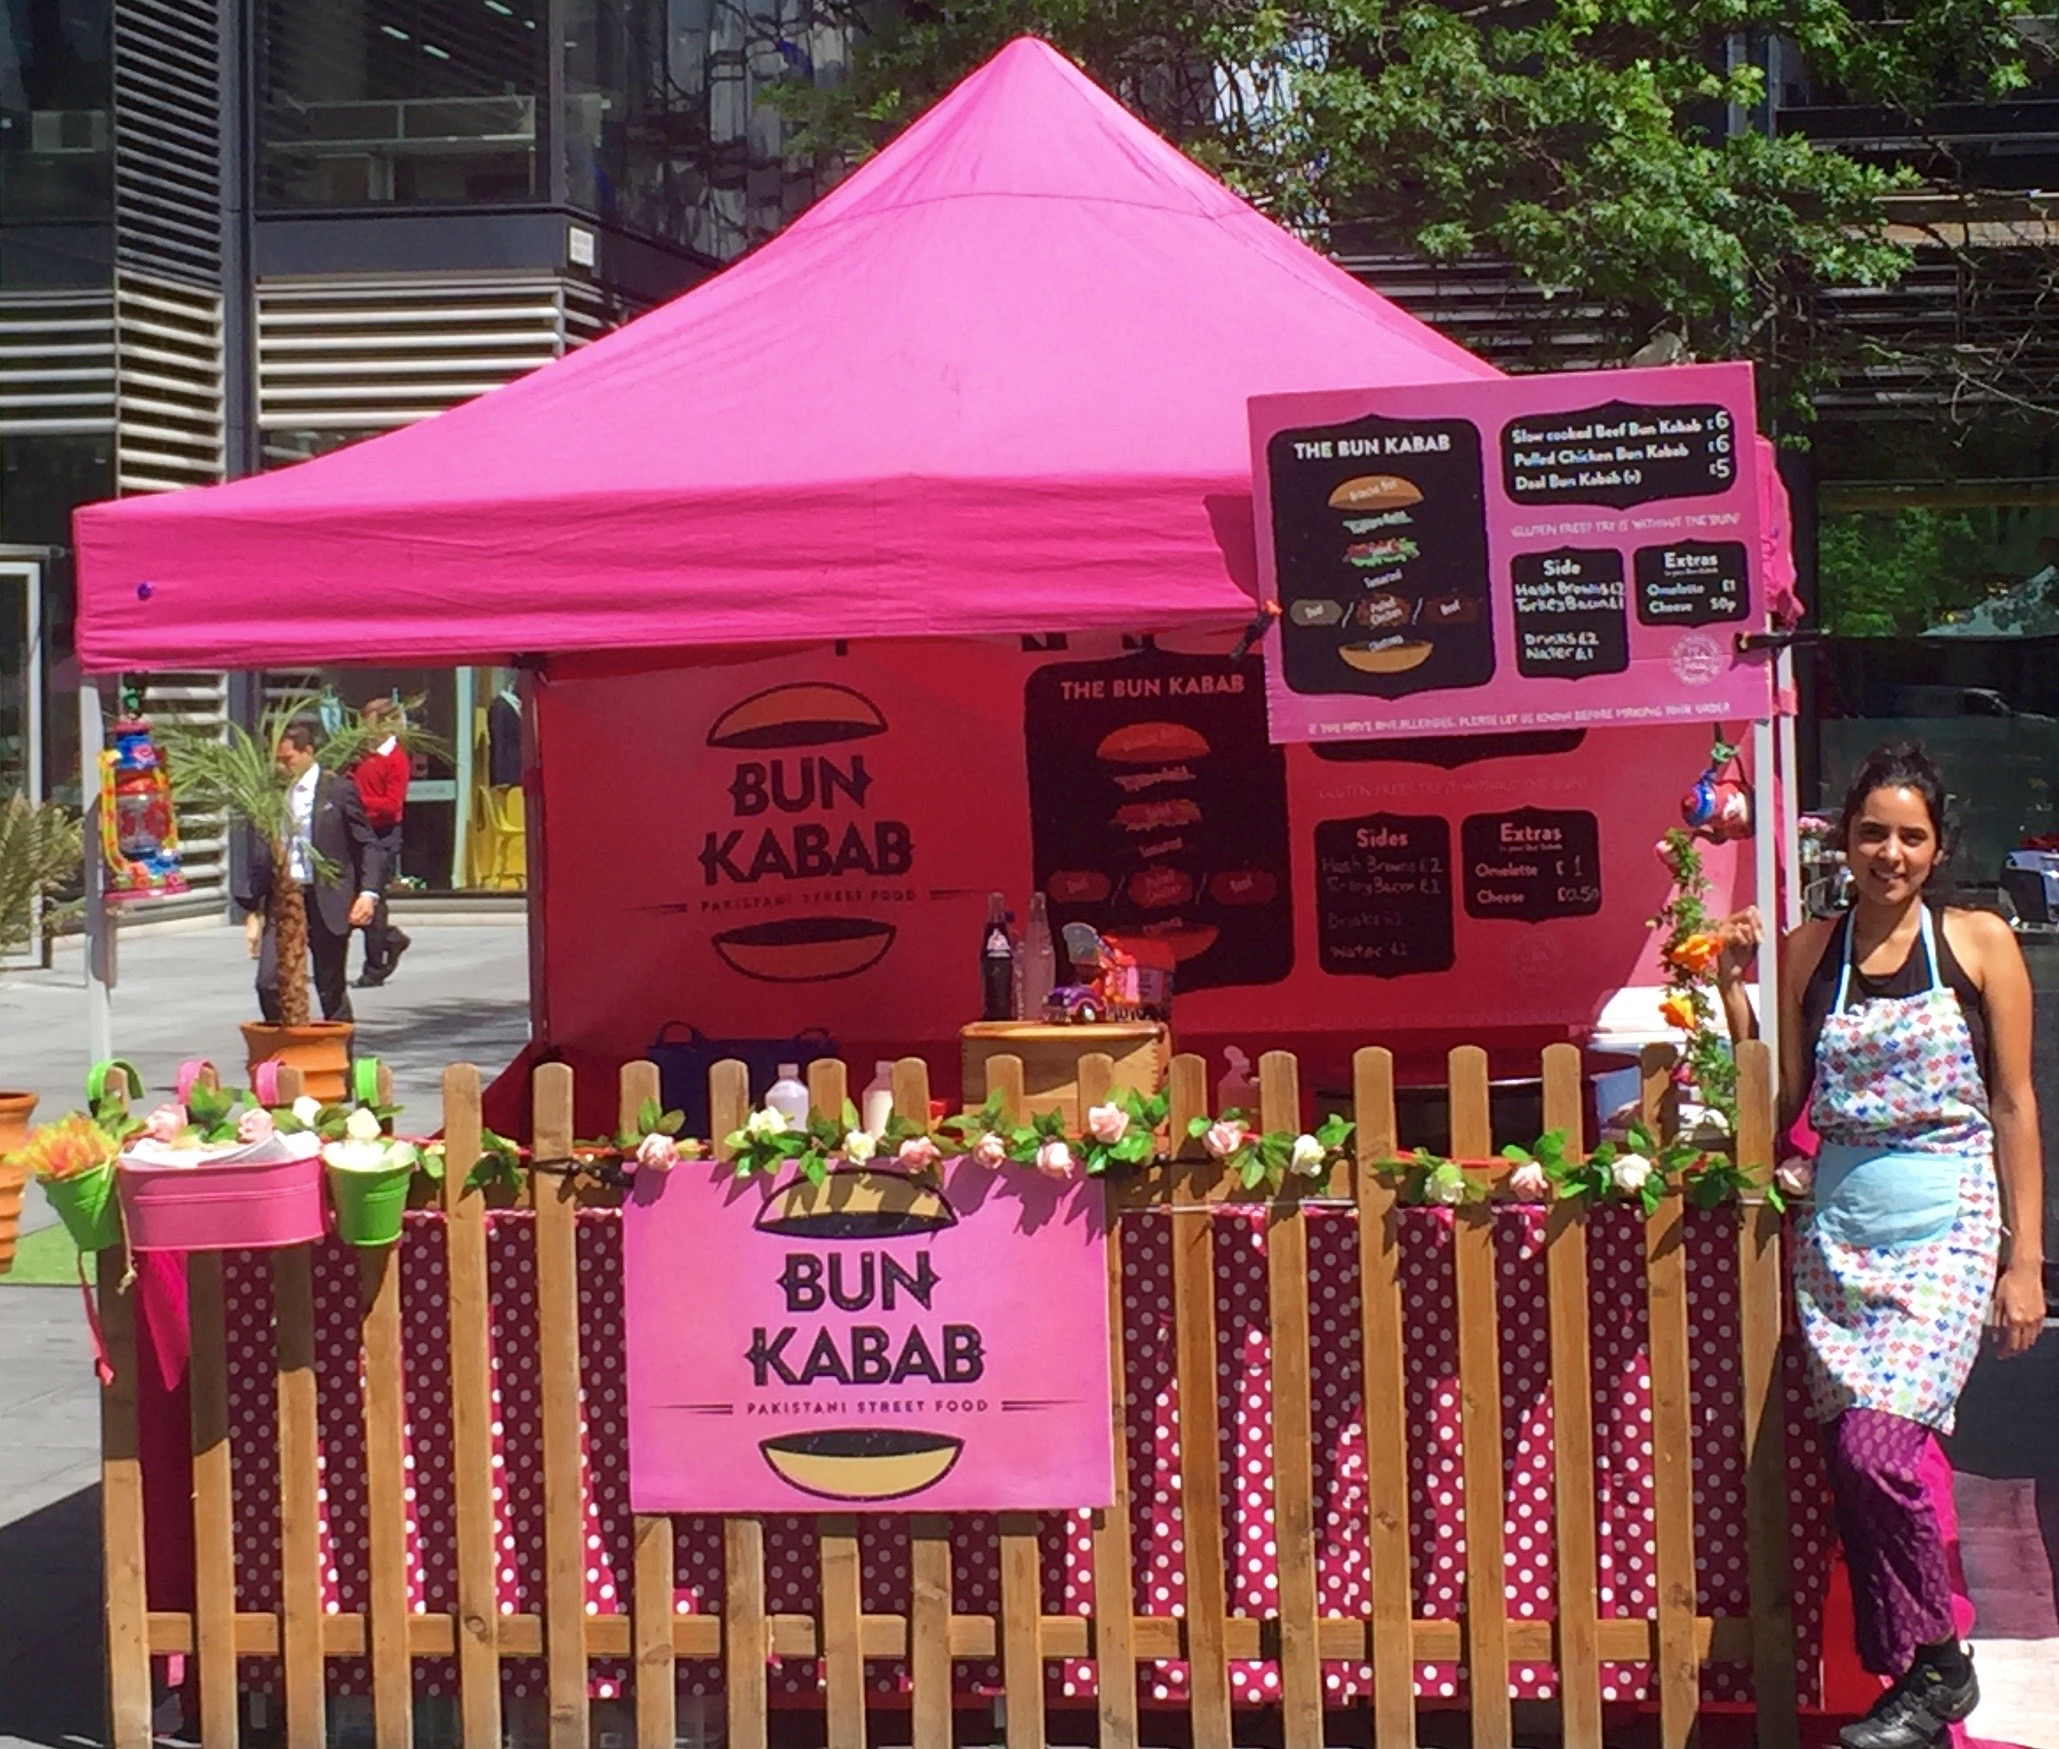 BUN KABAB - The Bun Kabab food stall specialises in the famous Karachi street food of the same name, trading at various city markets including Kerb at Southbank, O2 arena, Broadgate Circle and Lambeth Country Show. The BBC World Service recognises Numra as the first female Bun Kabab vendor in the world!Get in touch if you'd like to Bun Kabab at your event!